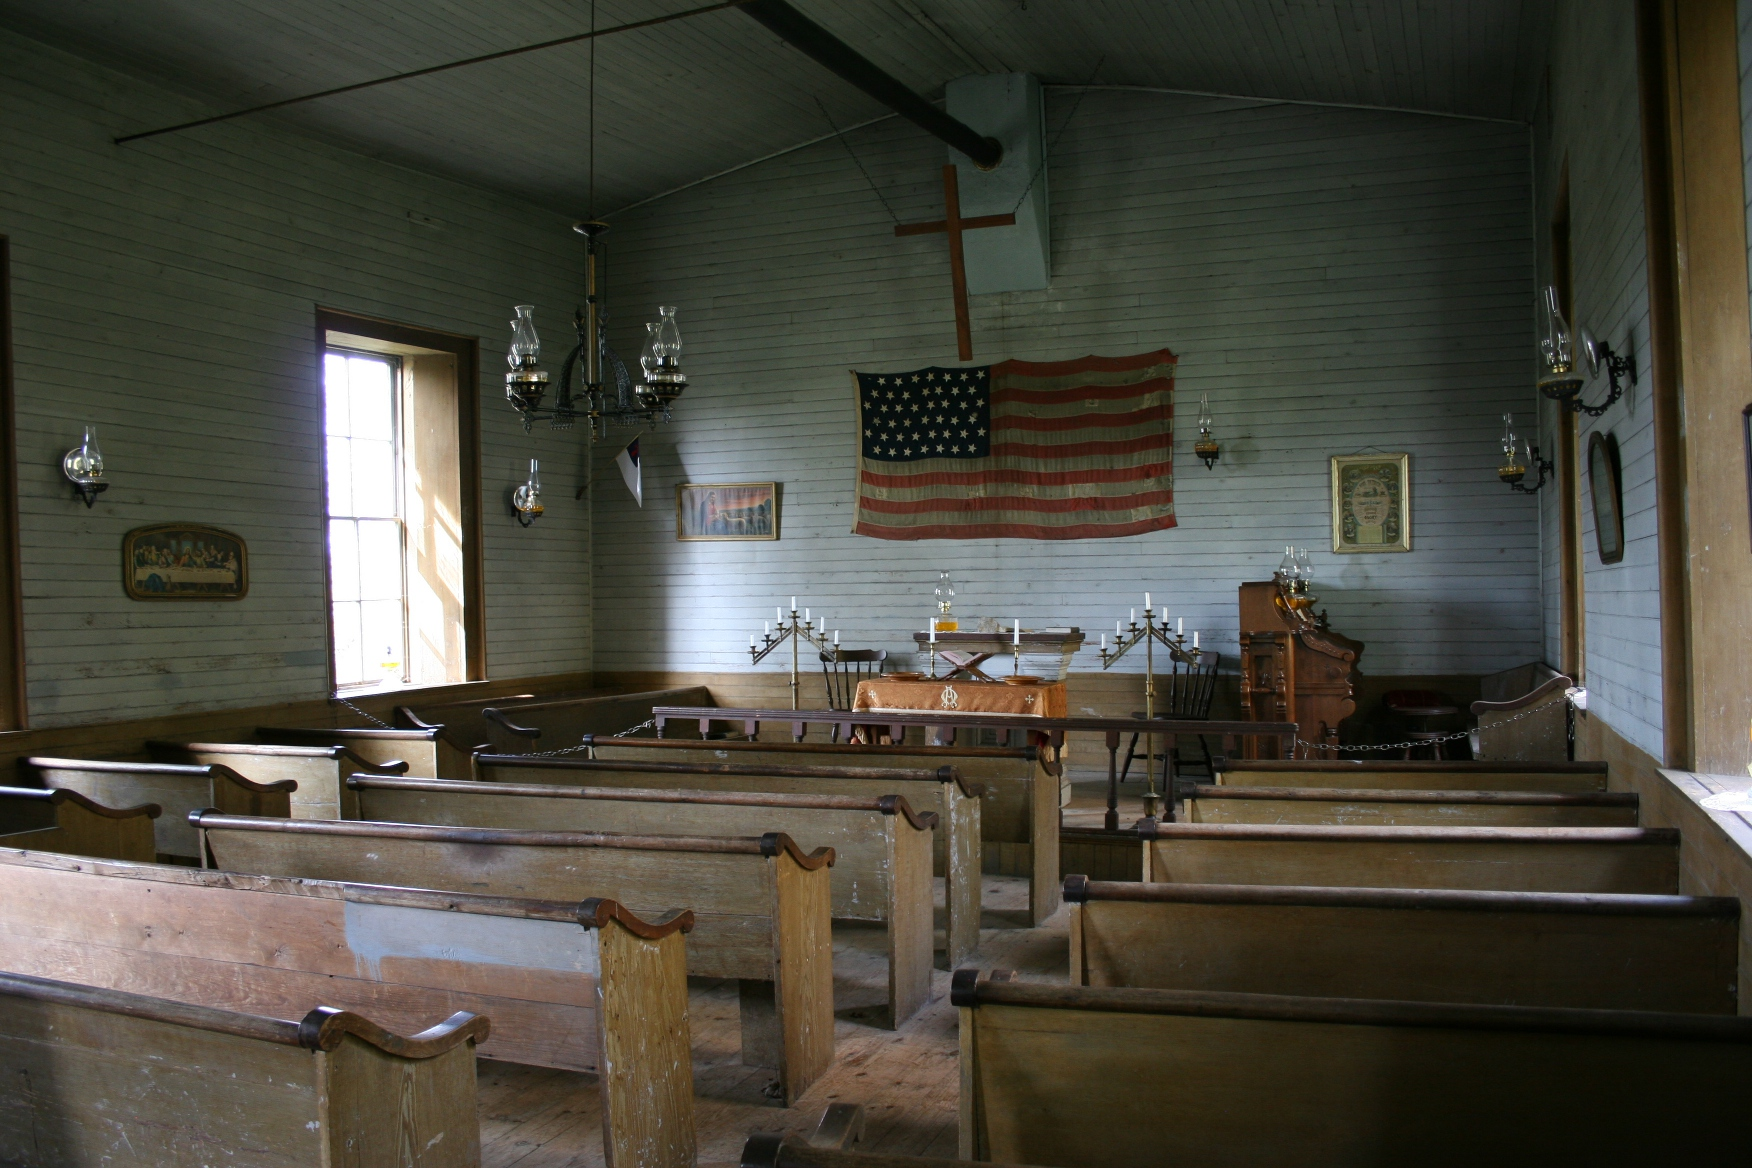 Jeremiah Fowler Stevens Built And Donated The Pews